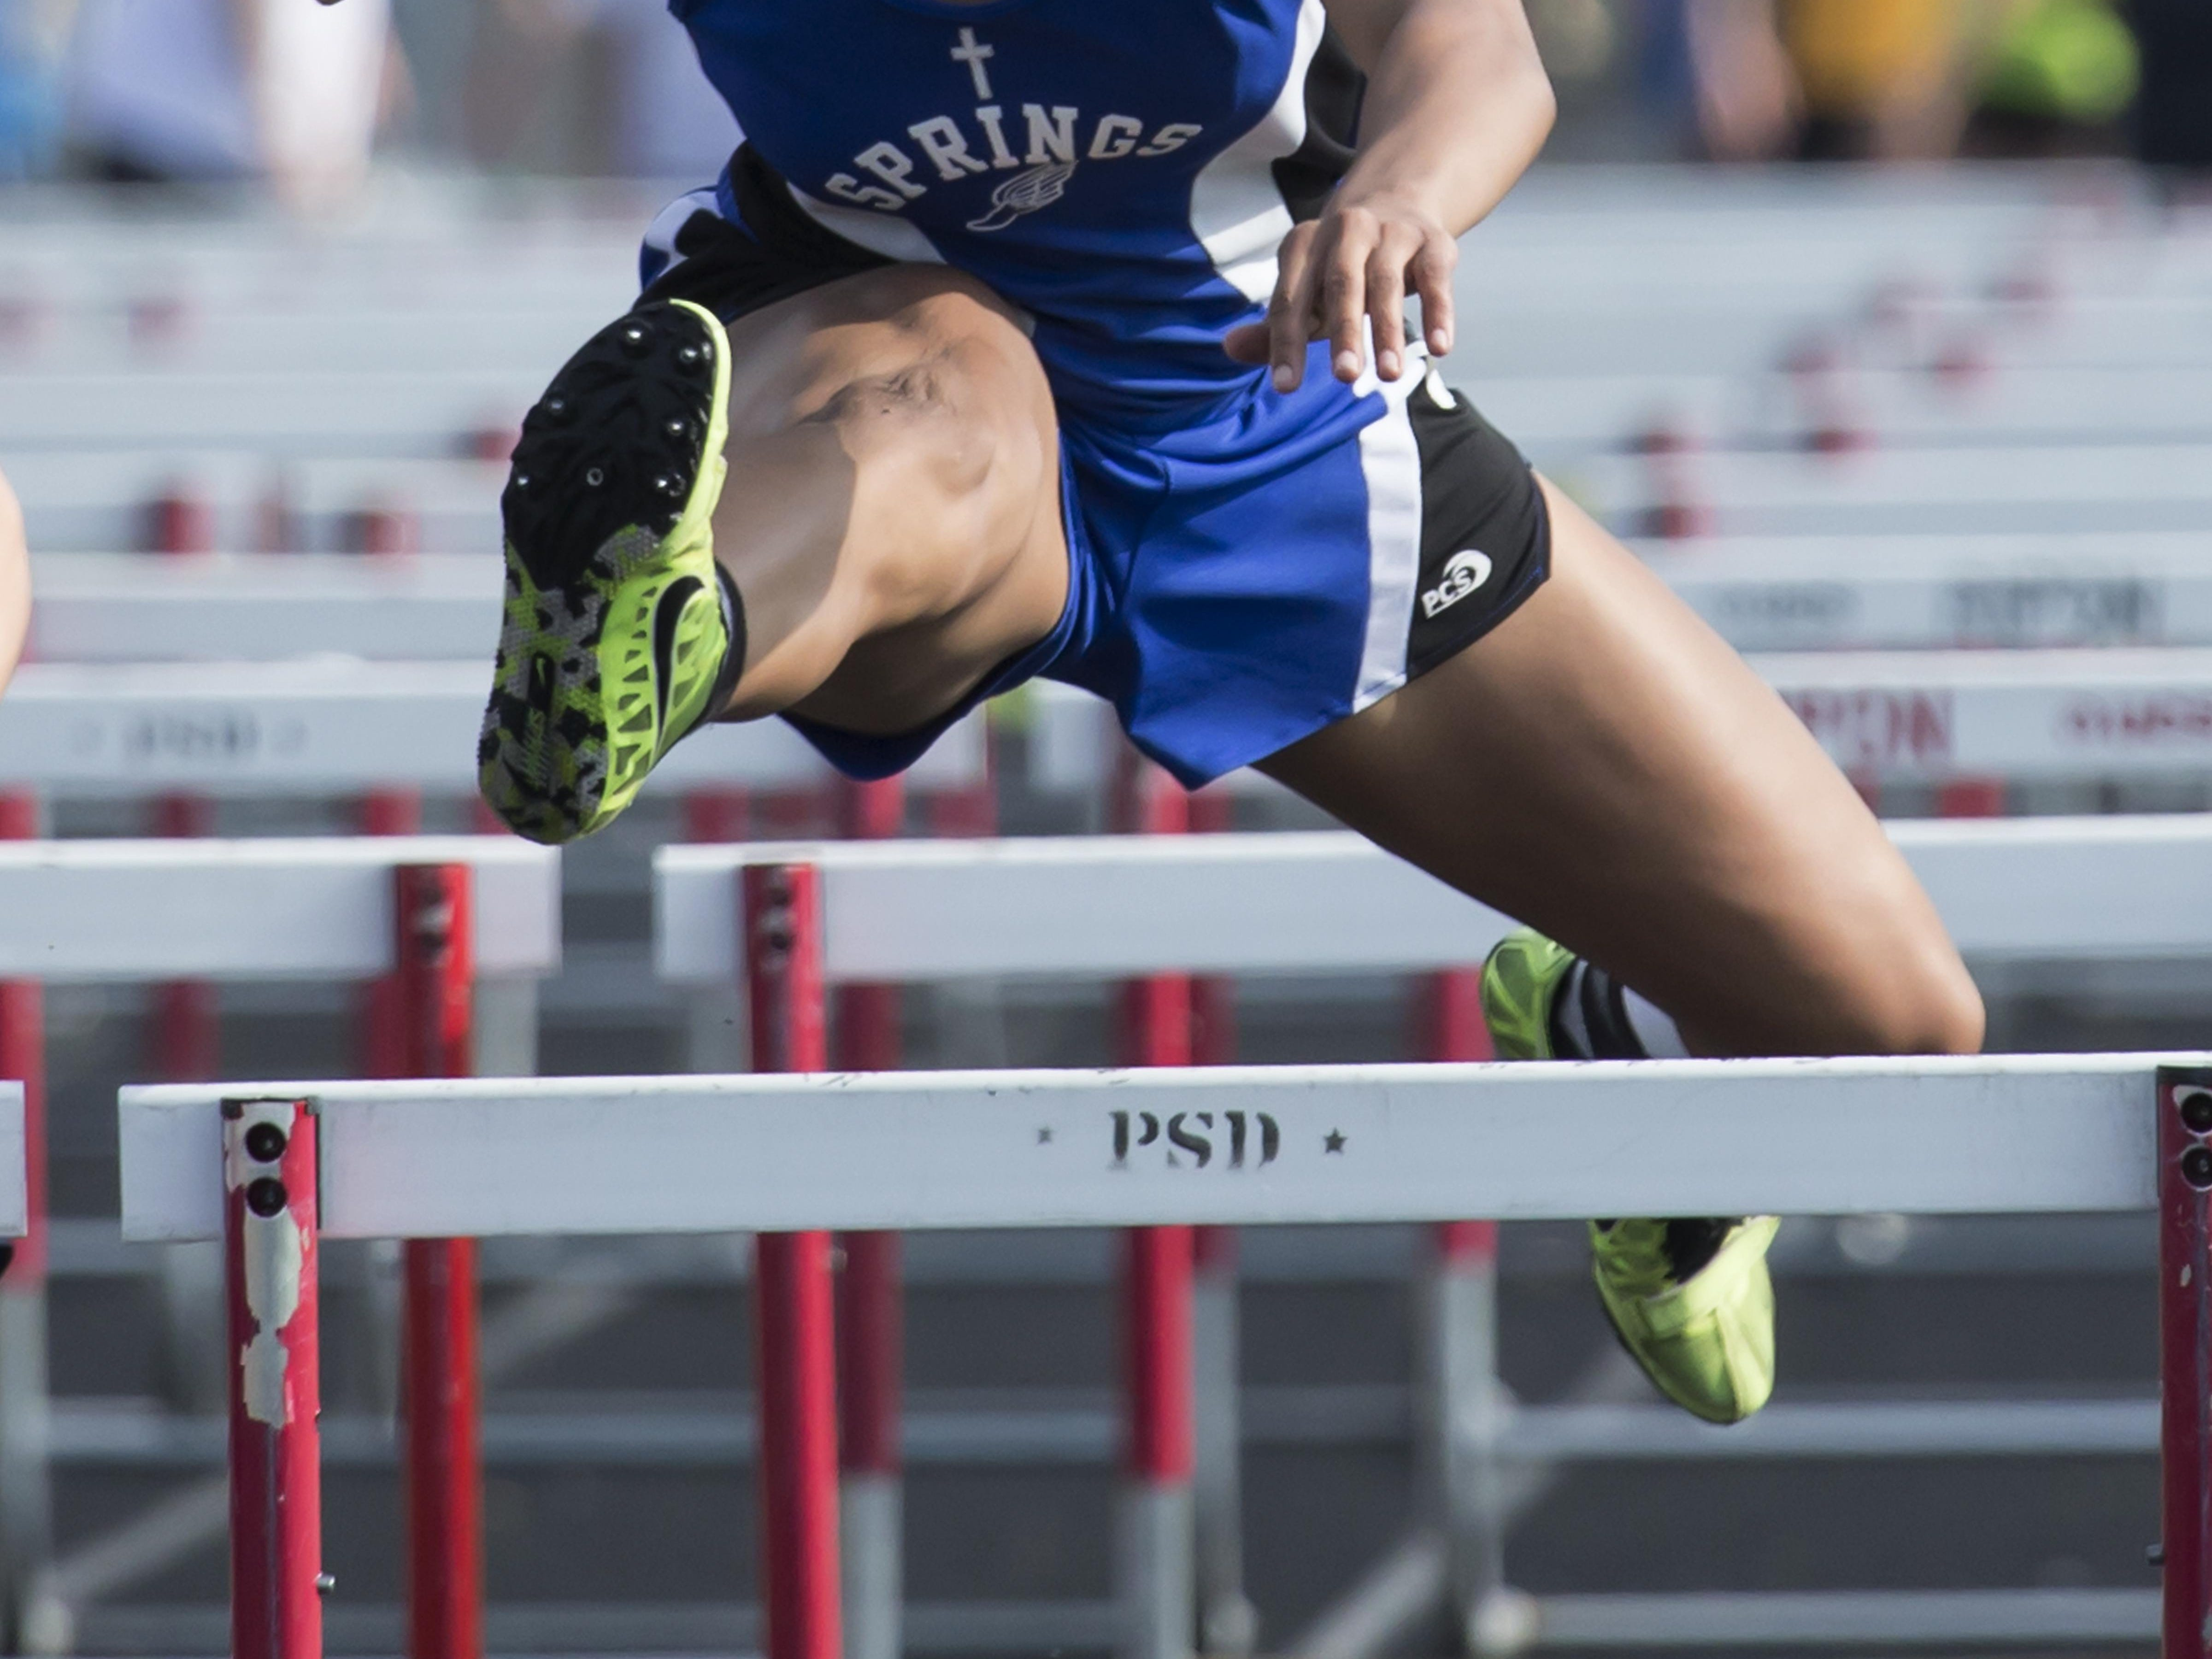 St. Mary's Springs' Anja Smith competes in the hurdles in last Friday's Division 3 sectional track and field meet at Princeton.